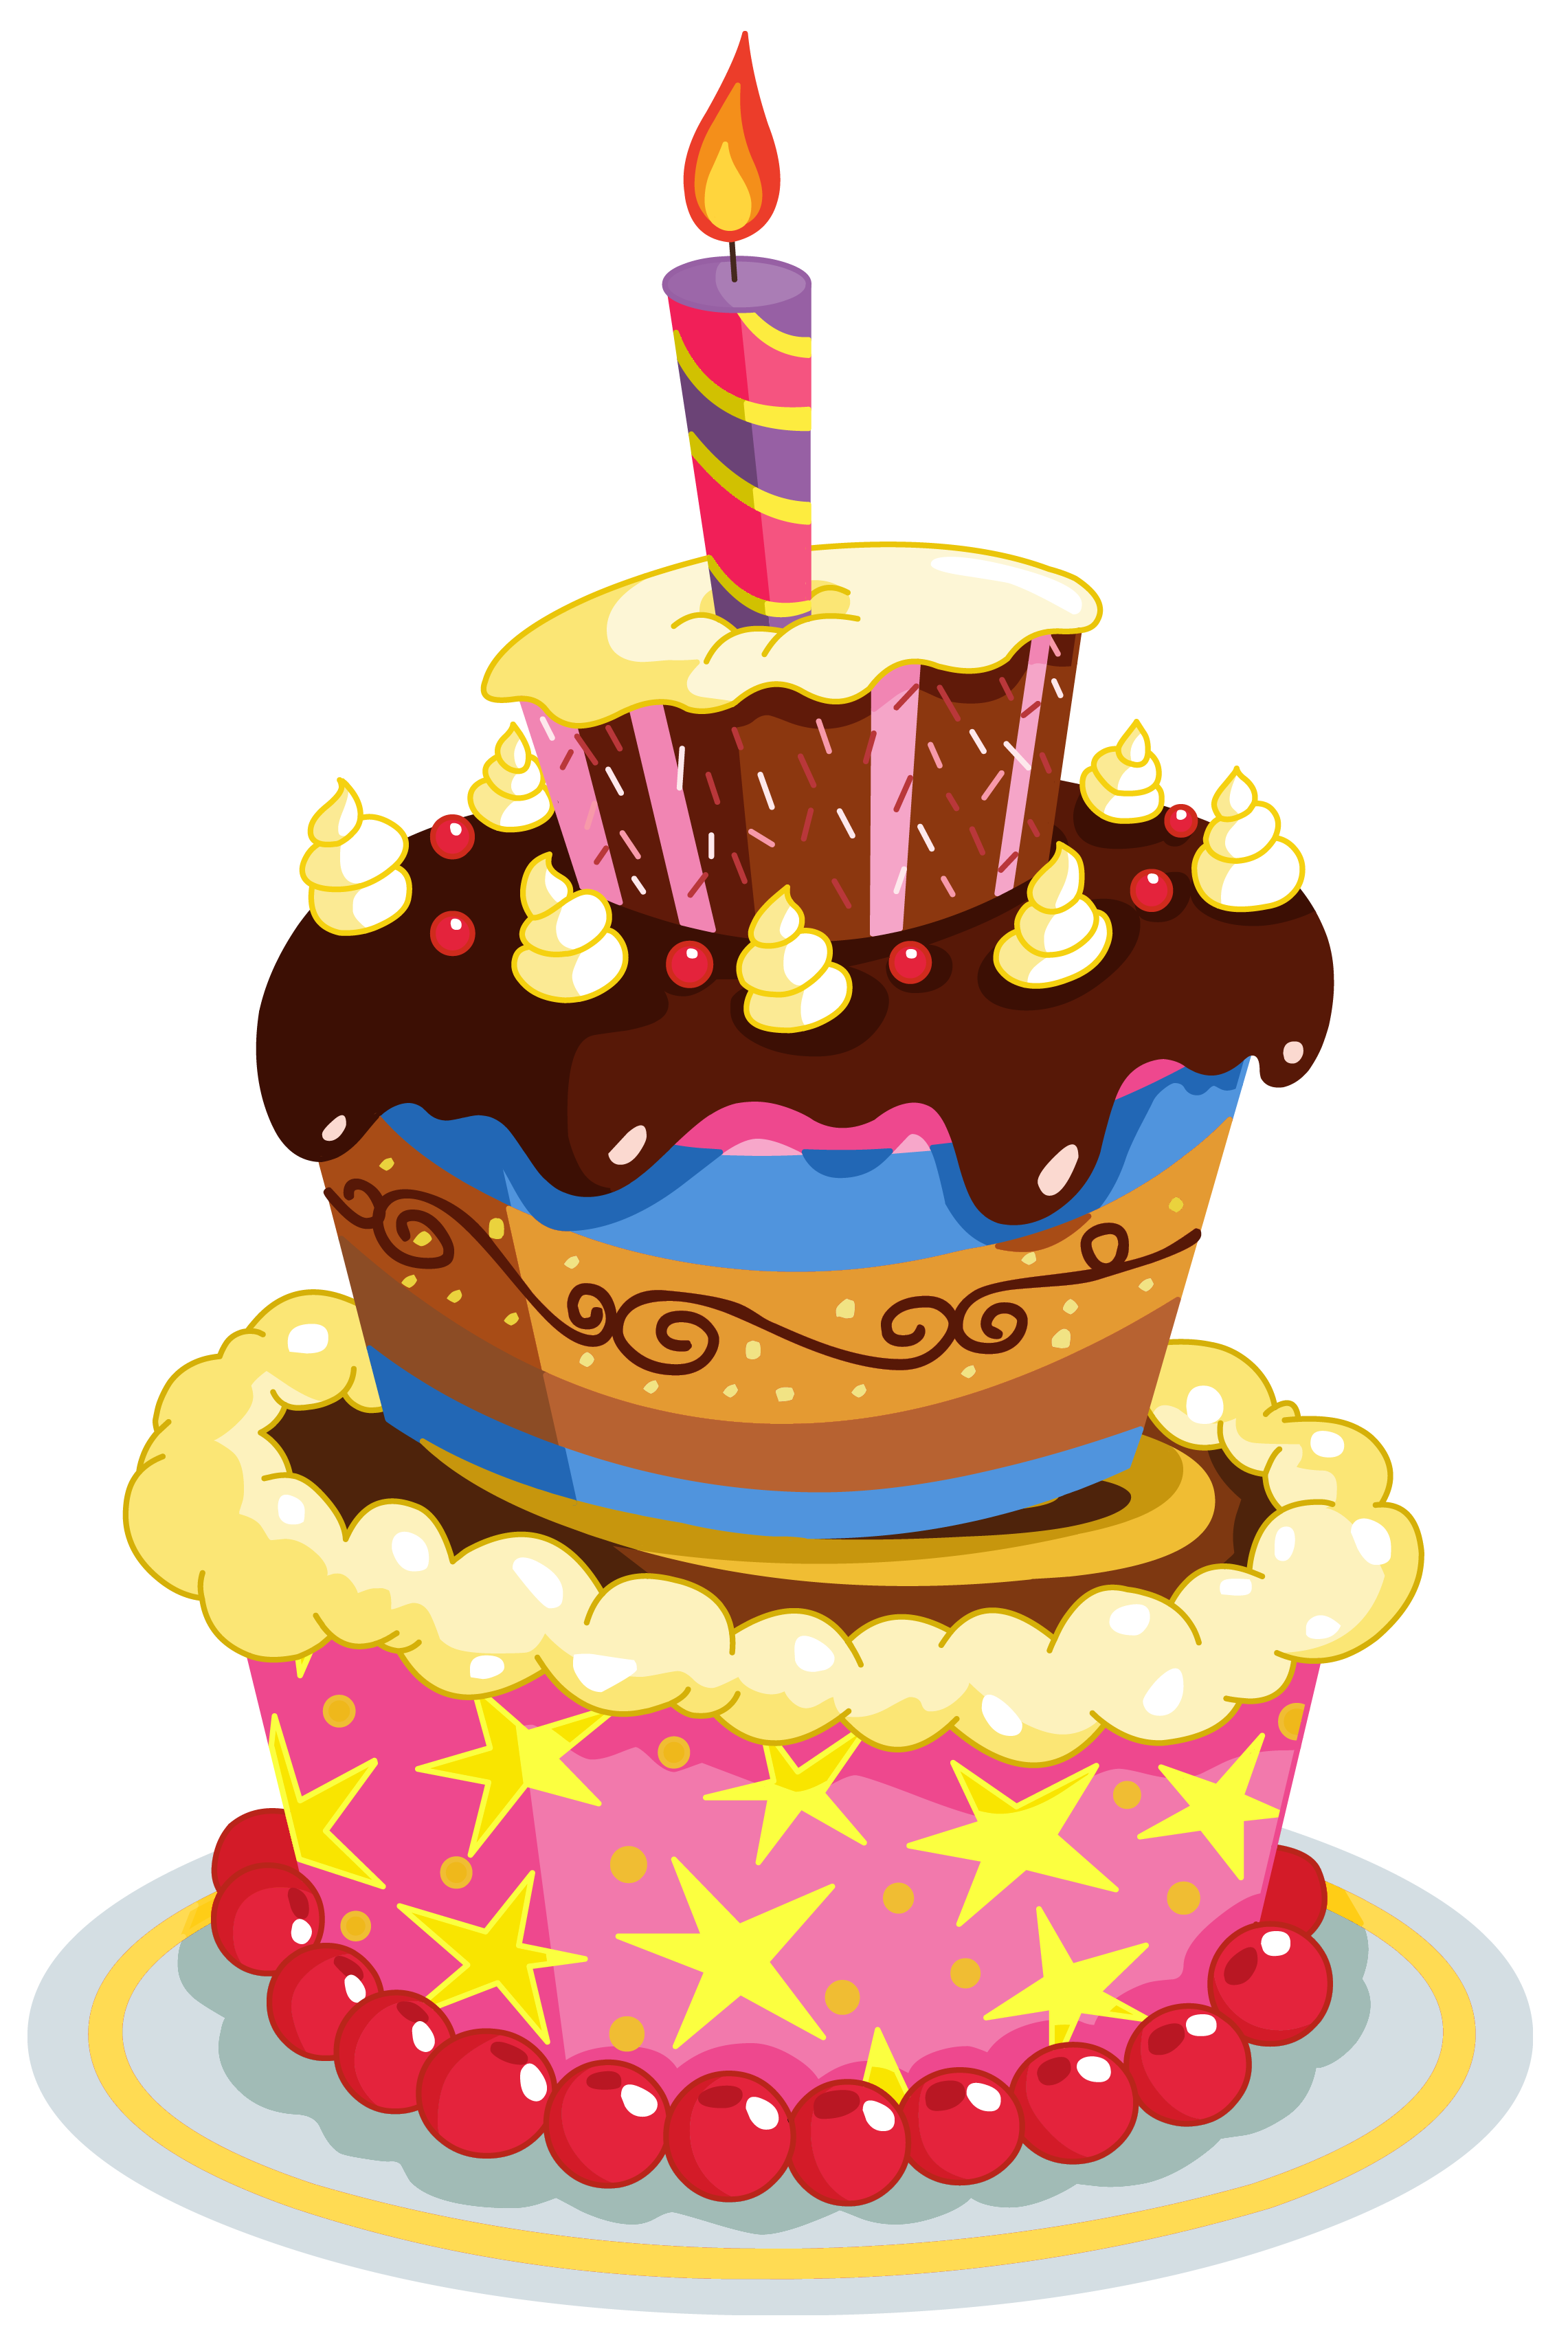 cake_PNG13106.png